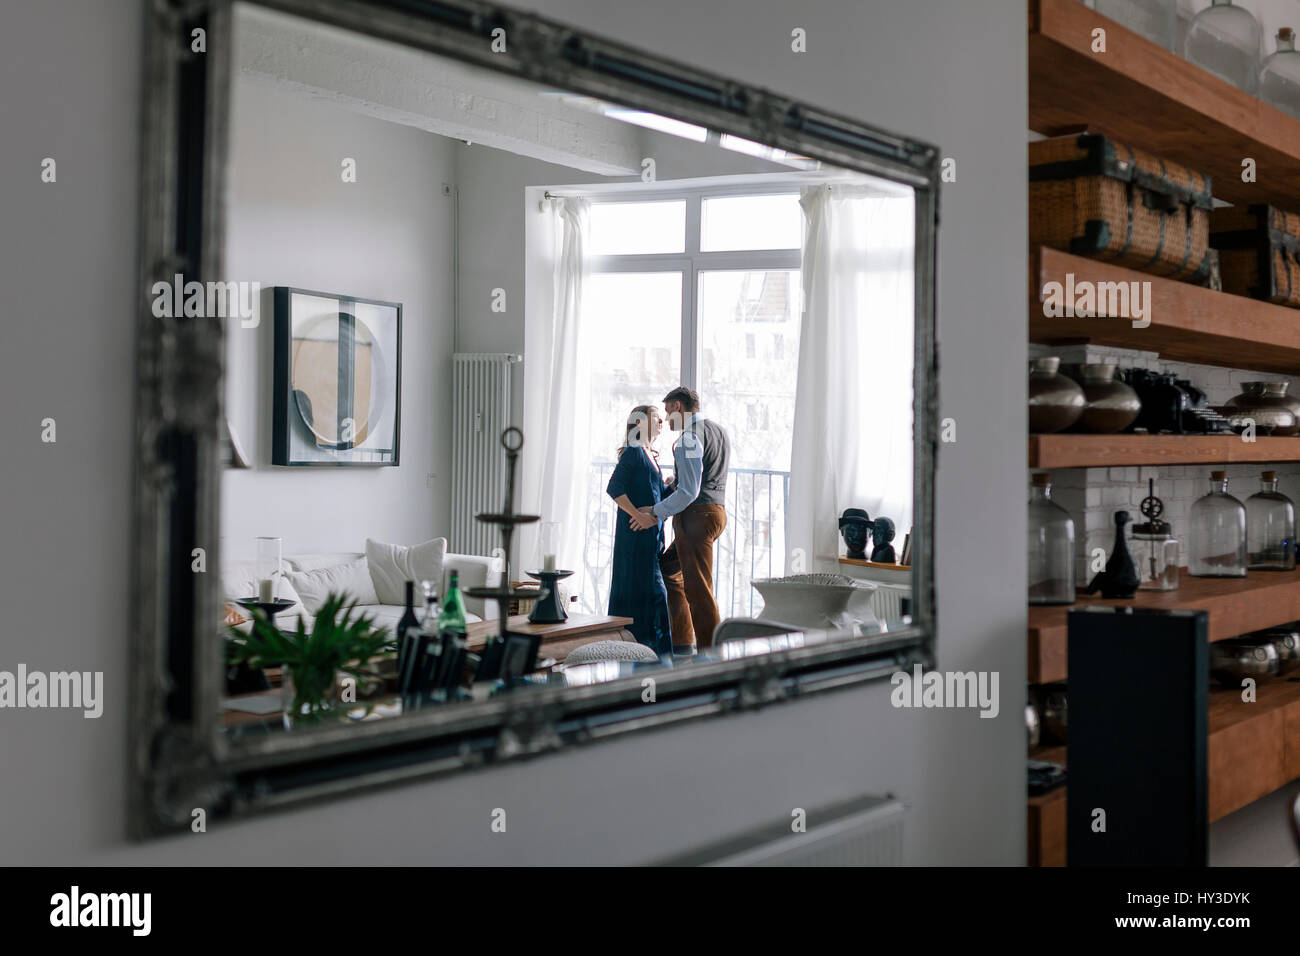 Germany, Couple reflected in mirror Stock Photo